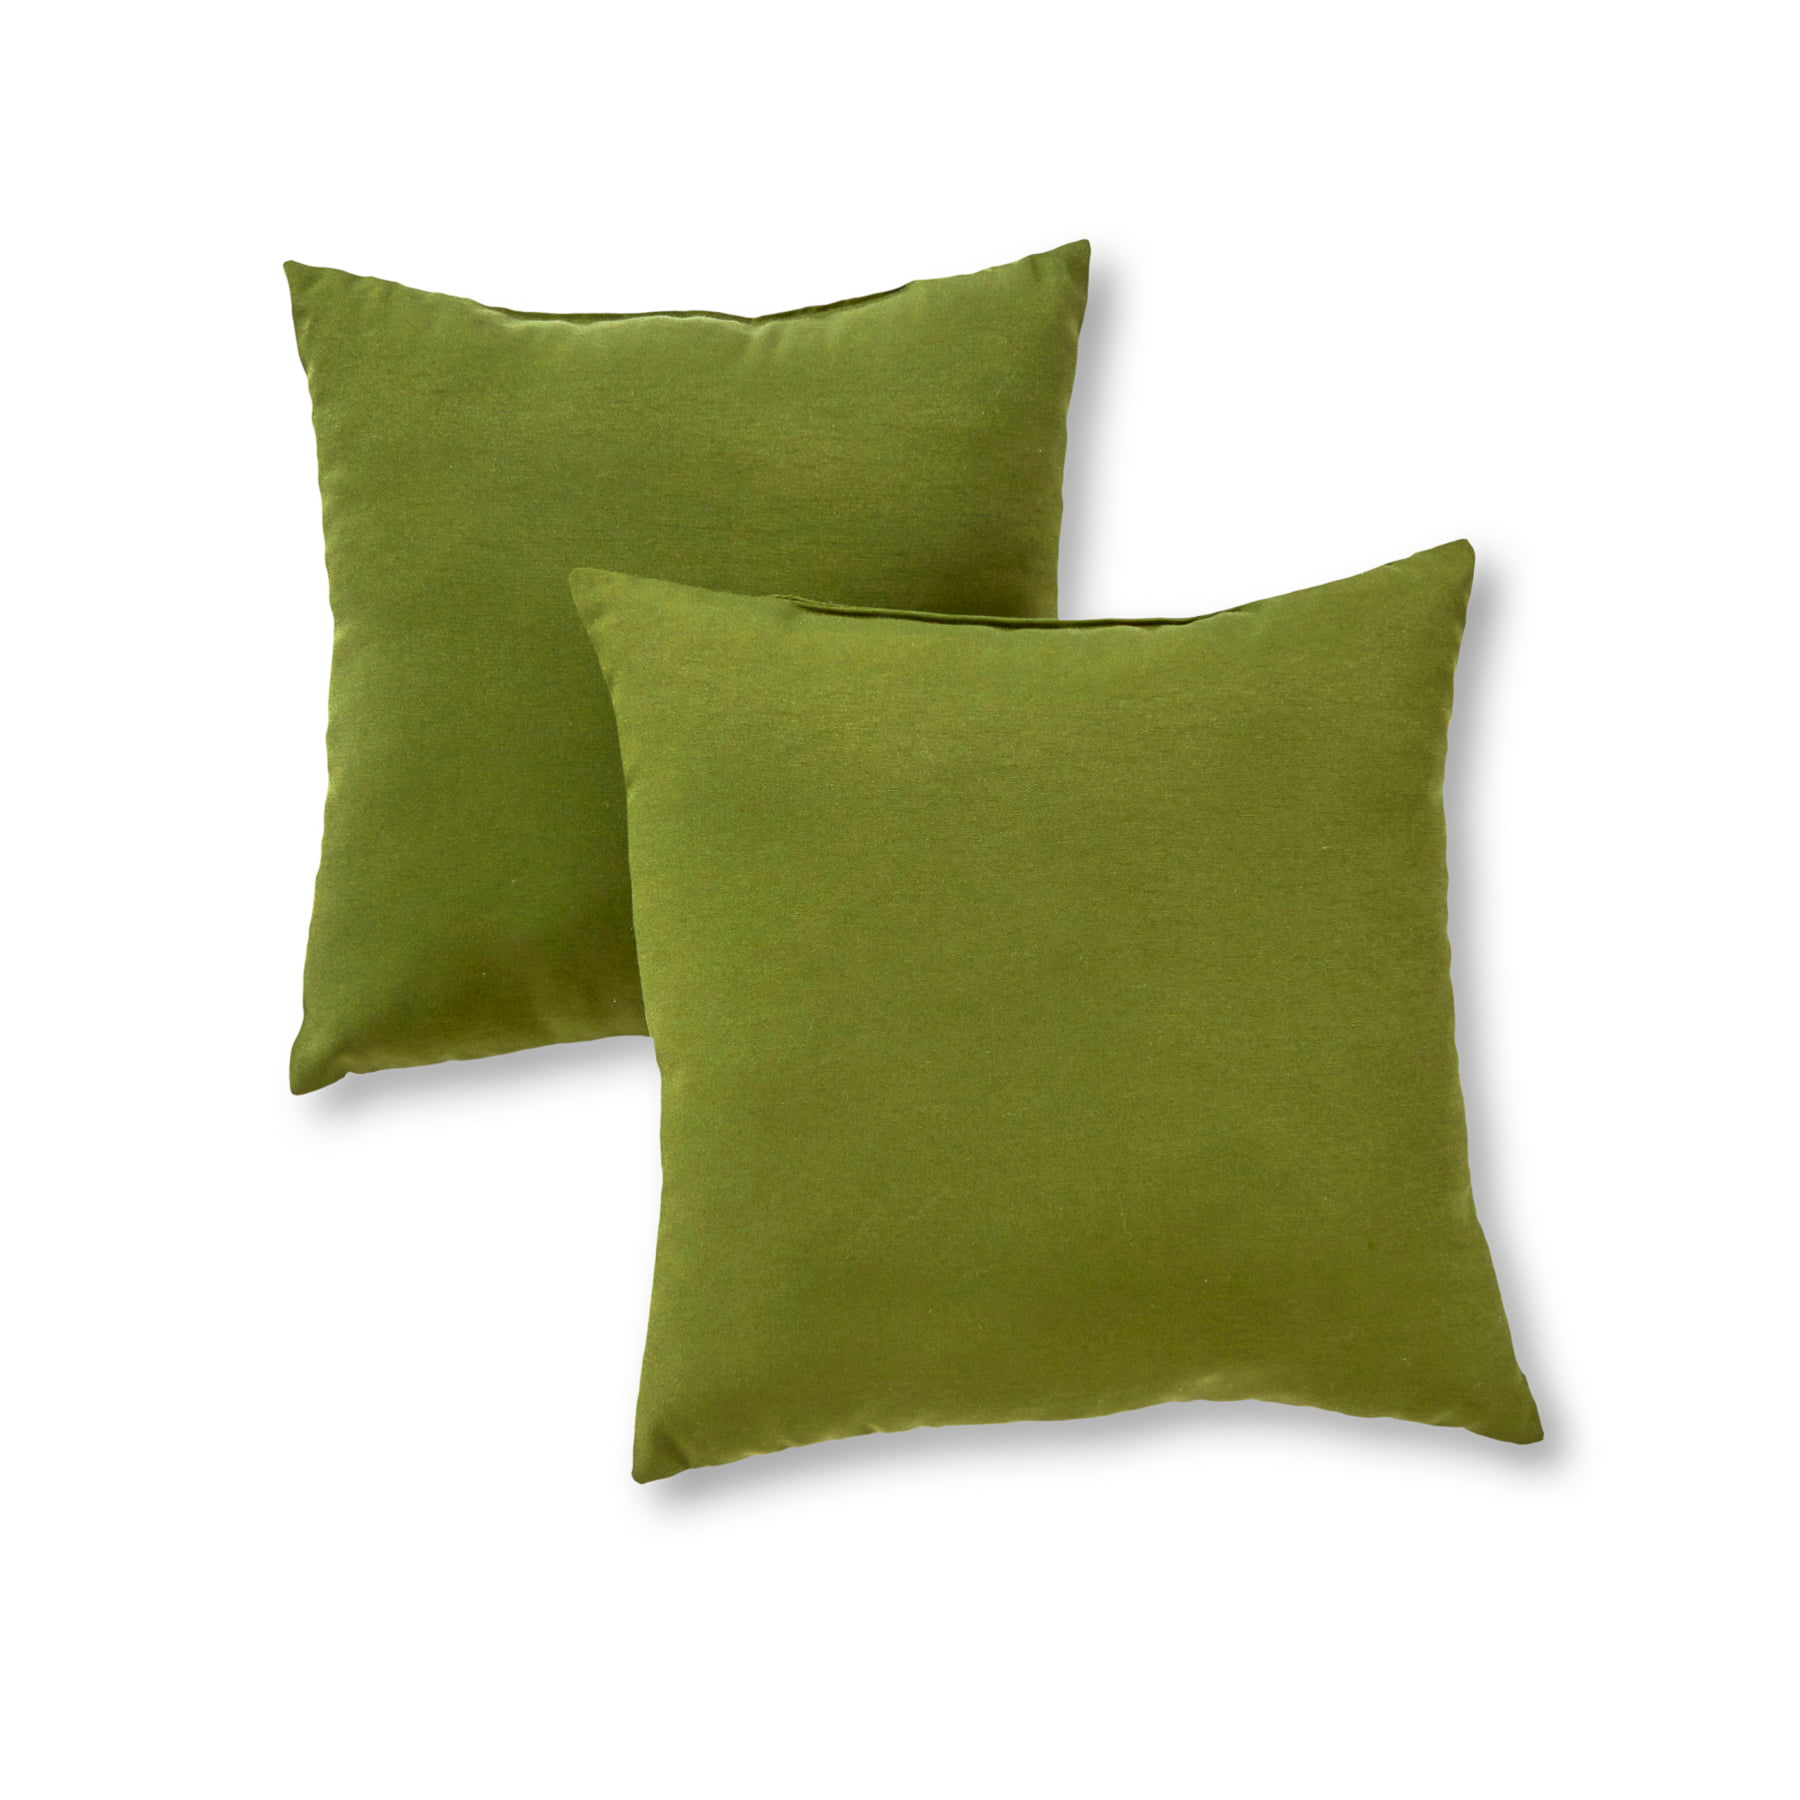 Greendale Home Fashions Outdoor Accent Pillow, Set of 2 by Greendale Home Fashions